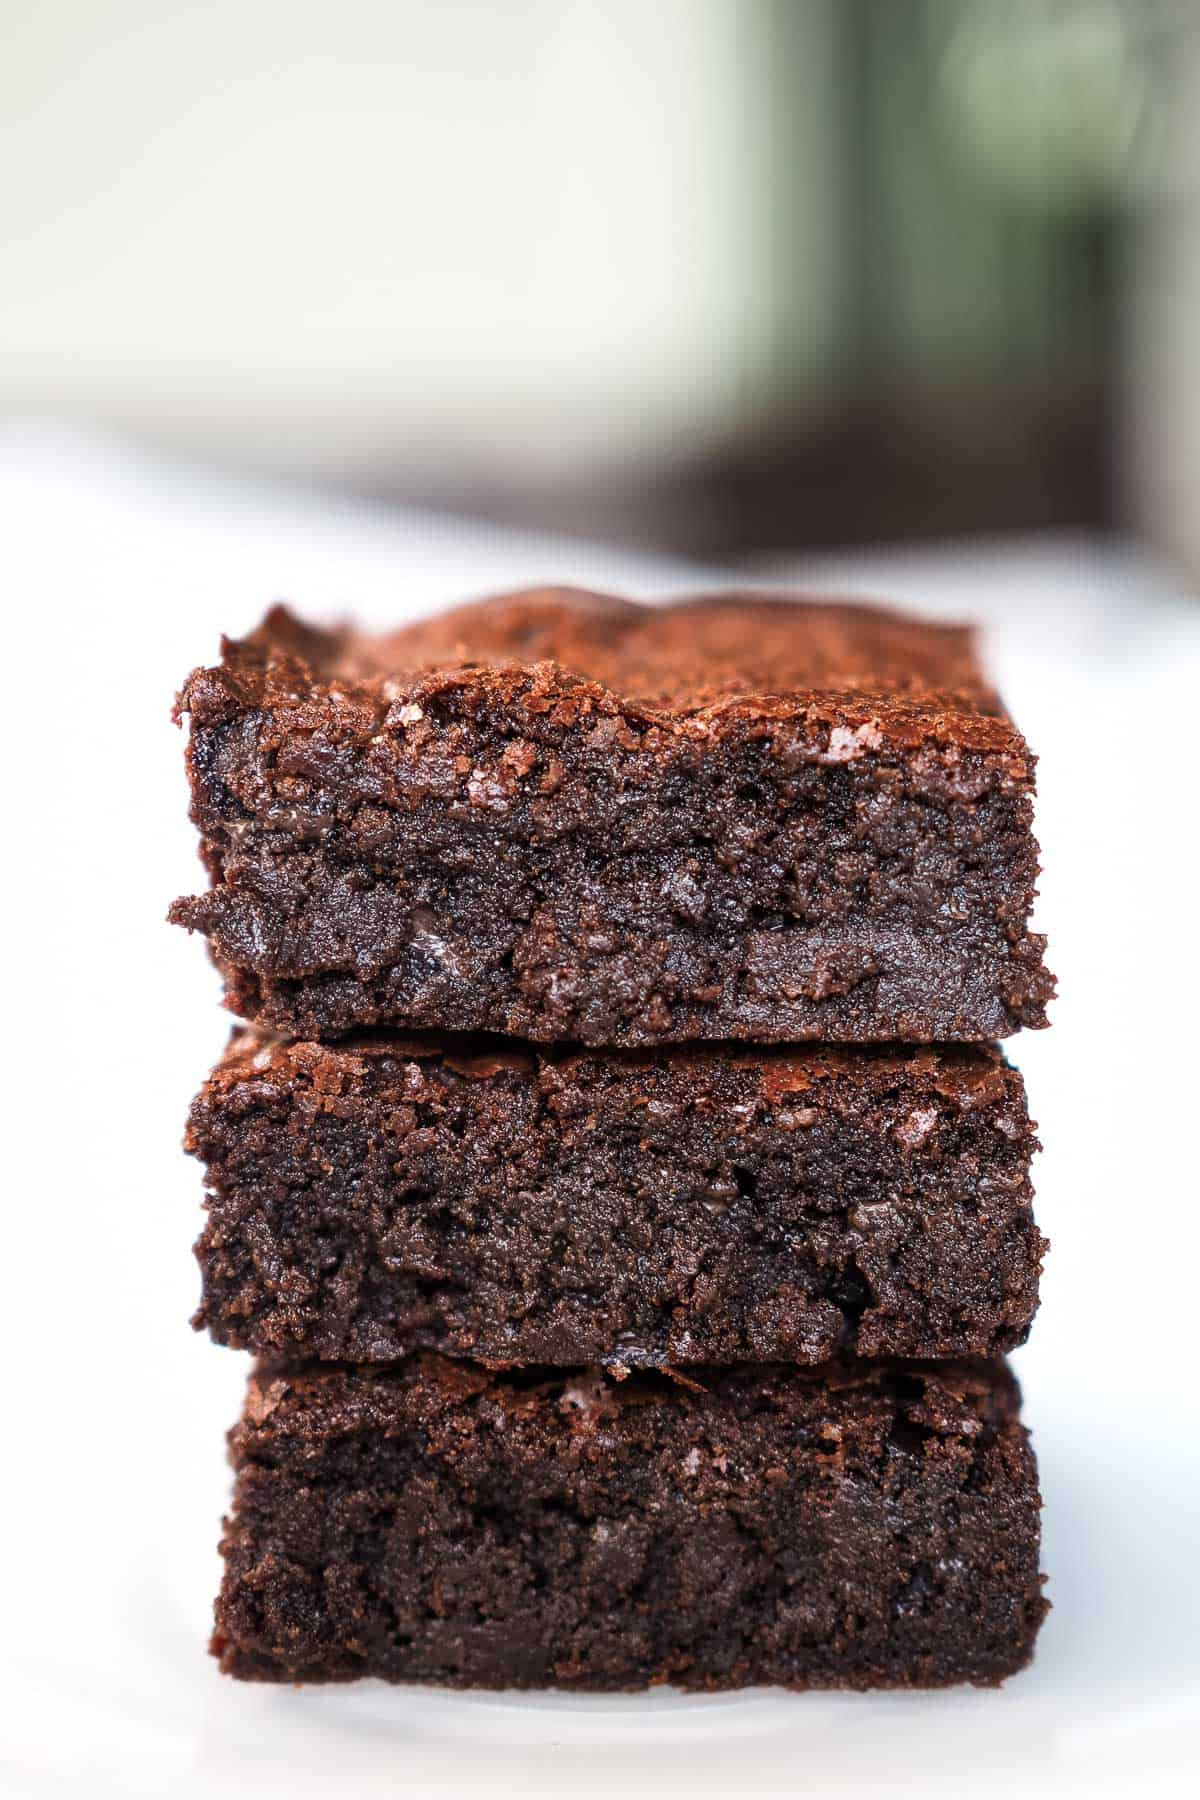 A stack of 3 square pieces of brownie